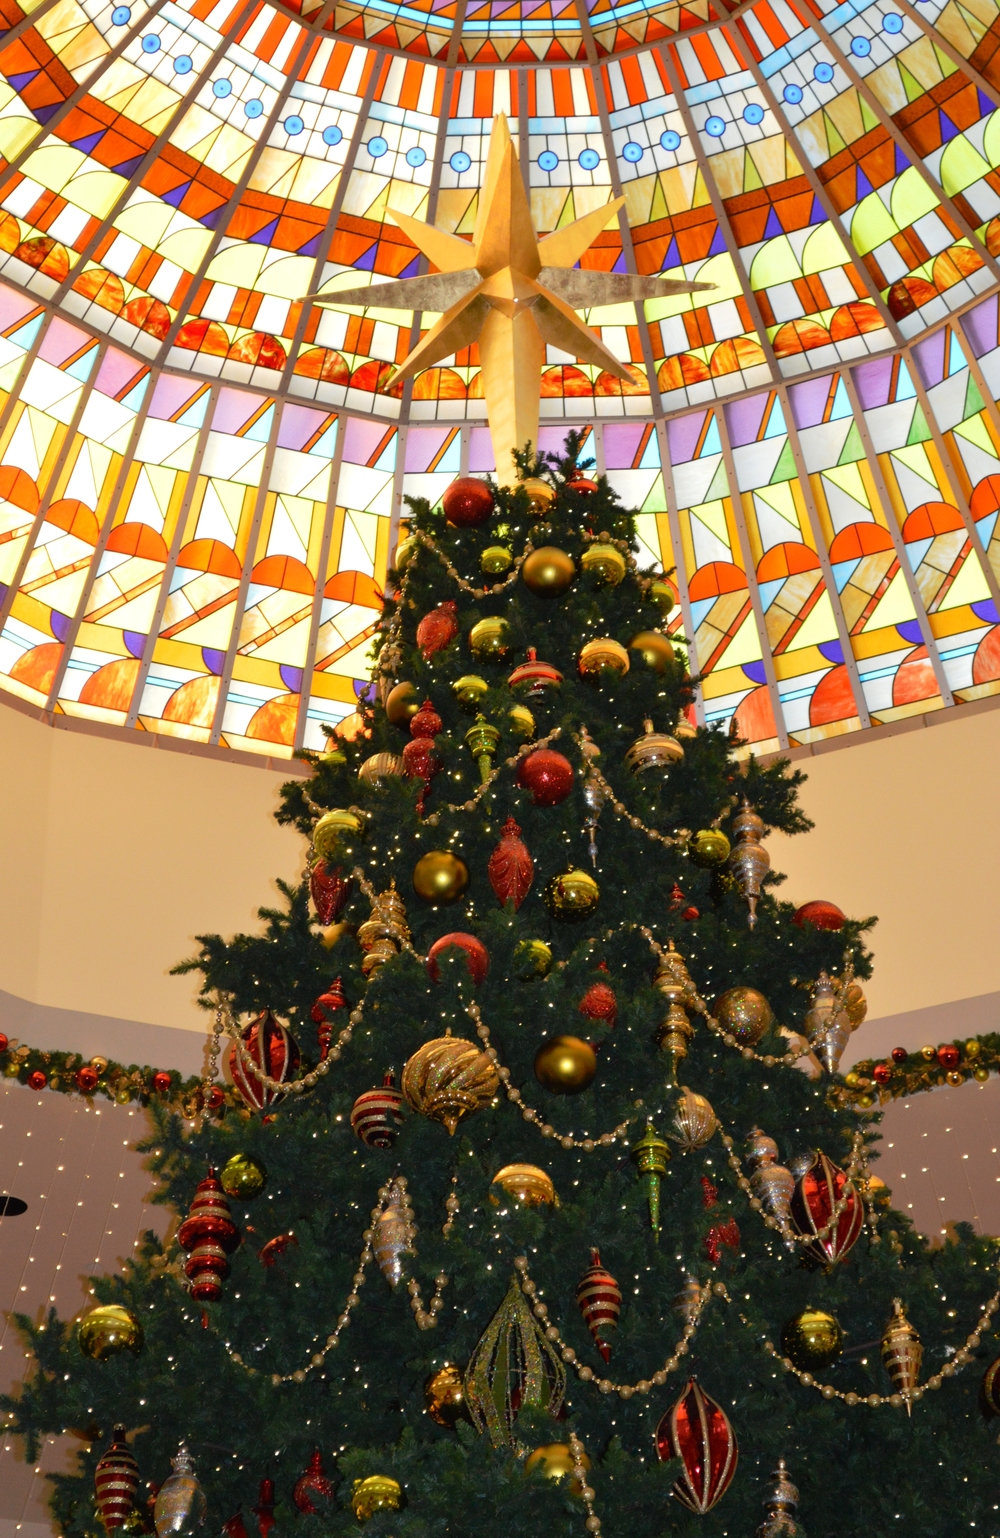 The Israeli Chief Rabbinate removed a ban on Christmas trees in Israeli hotels. (Illustrative.) Credit: Wikimedia Commons.